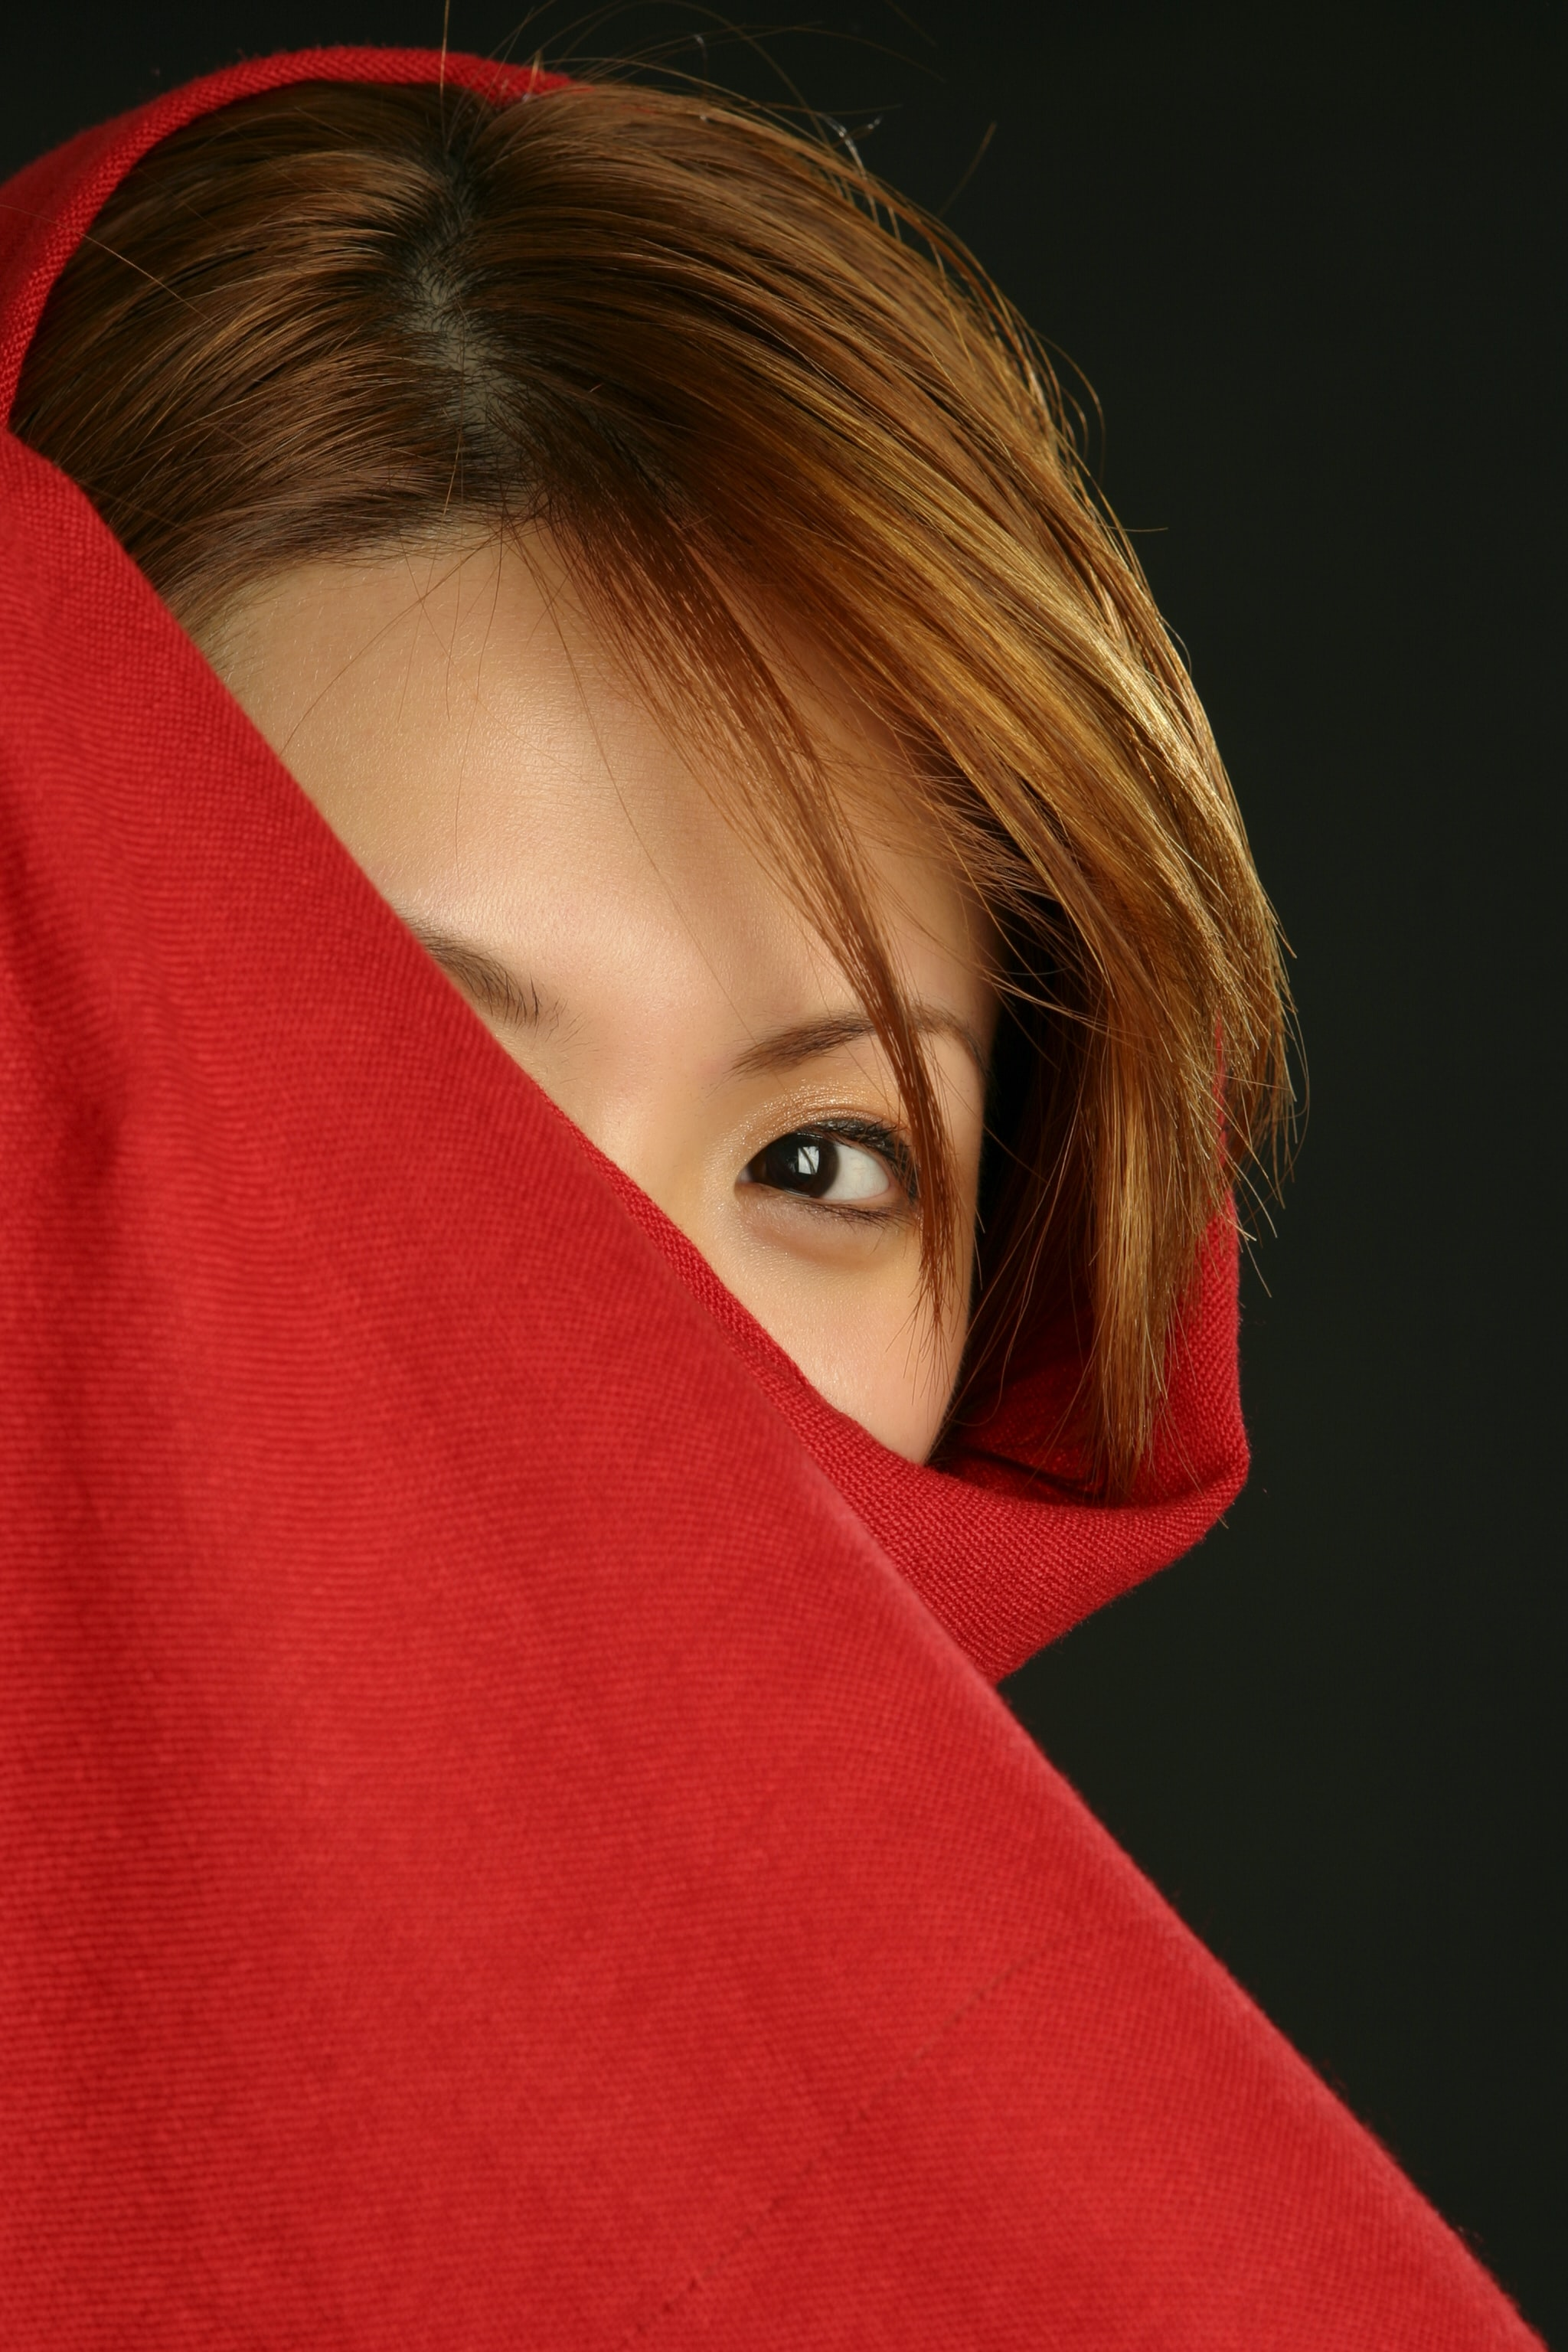 woman hiding in red textile